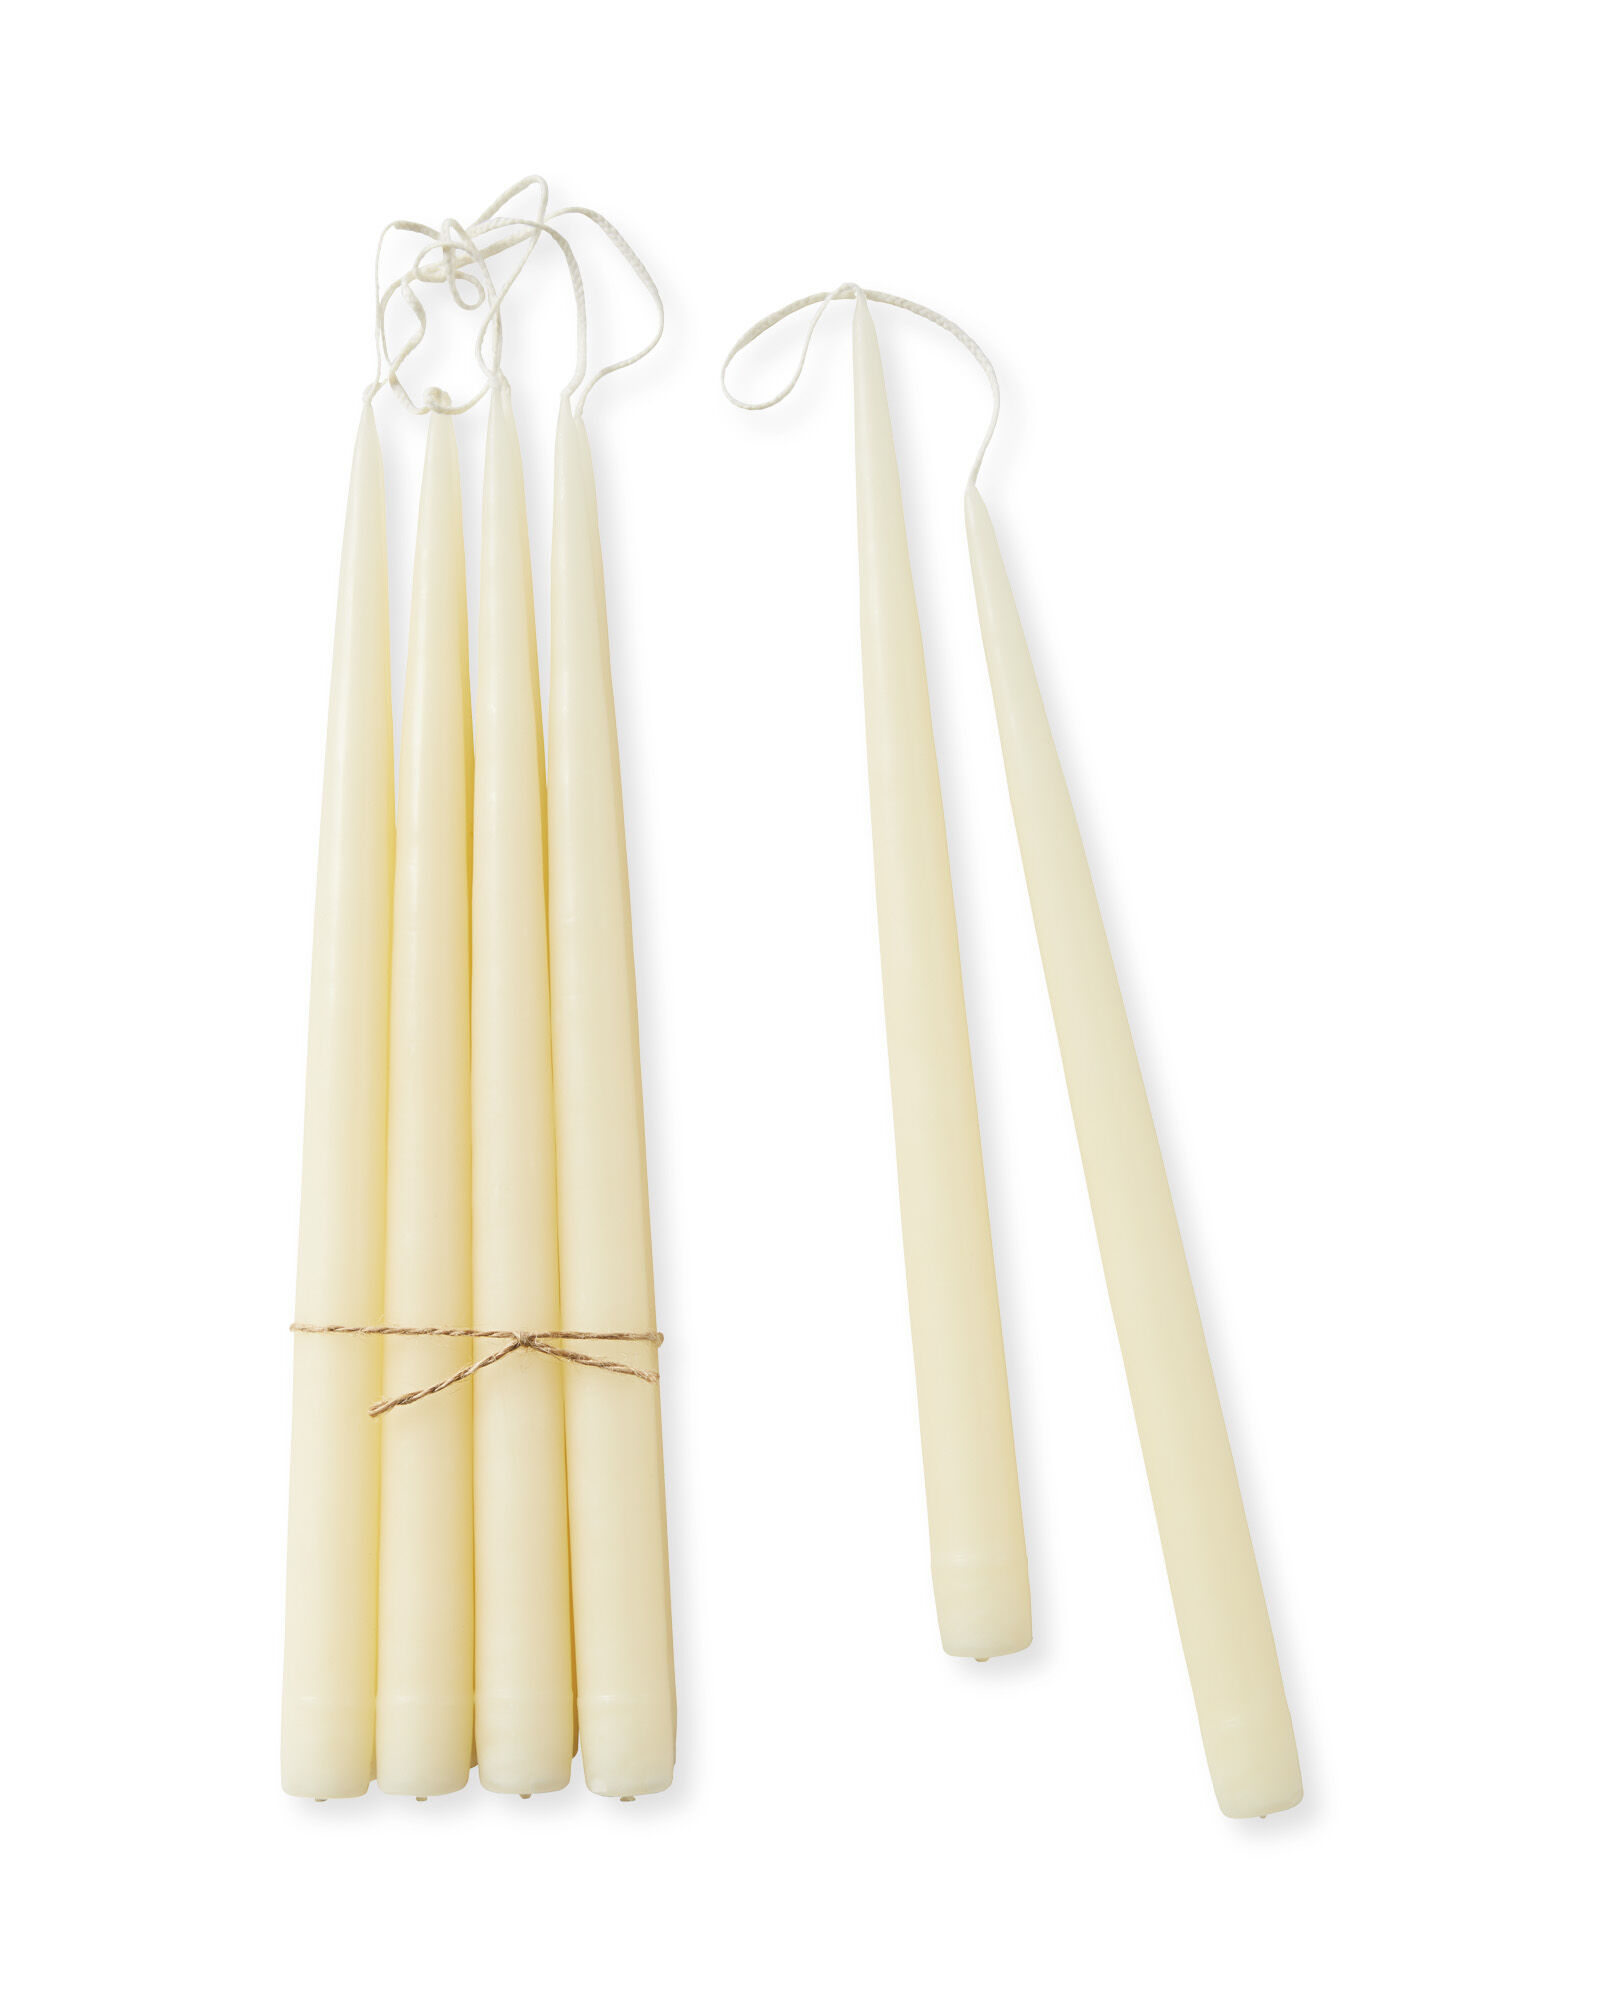 Tapered Candles (Set of 10)